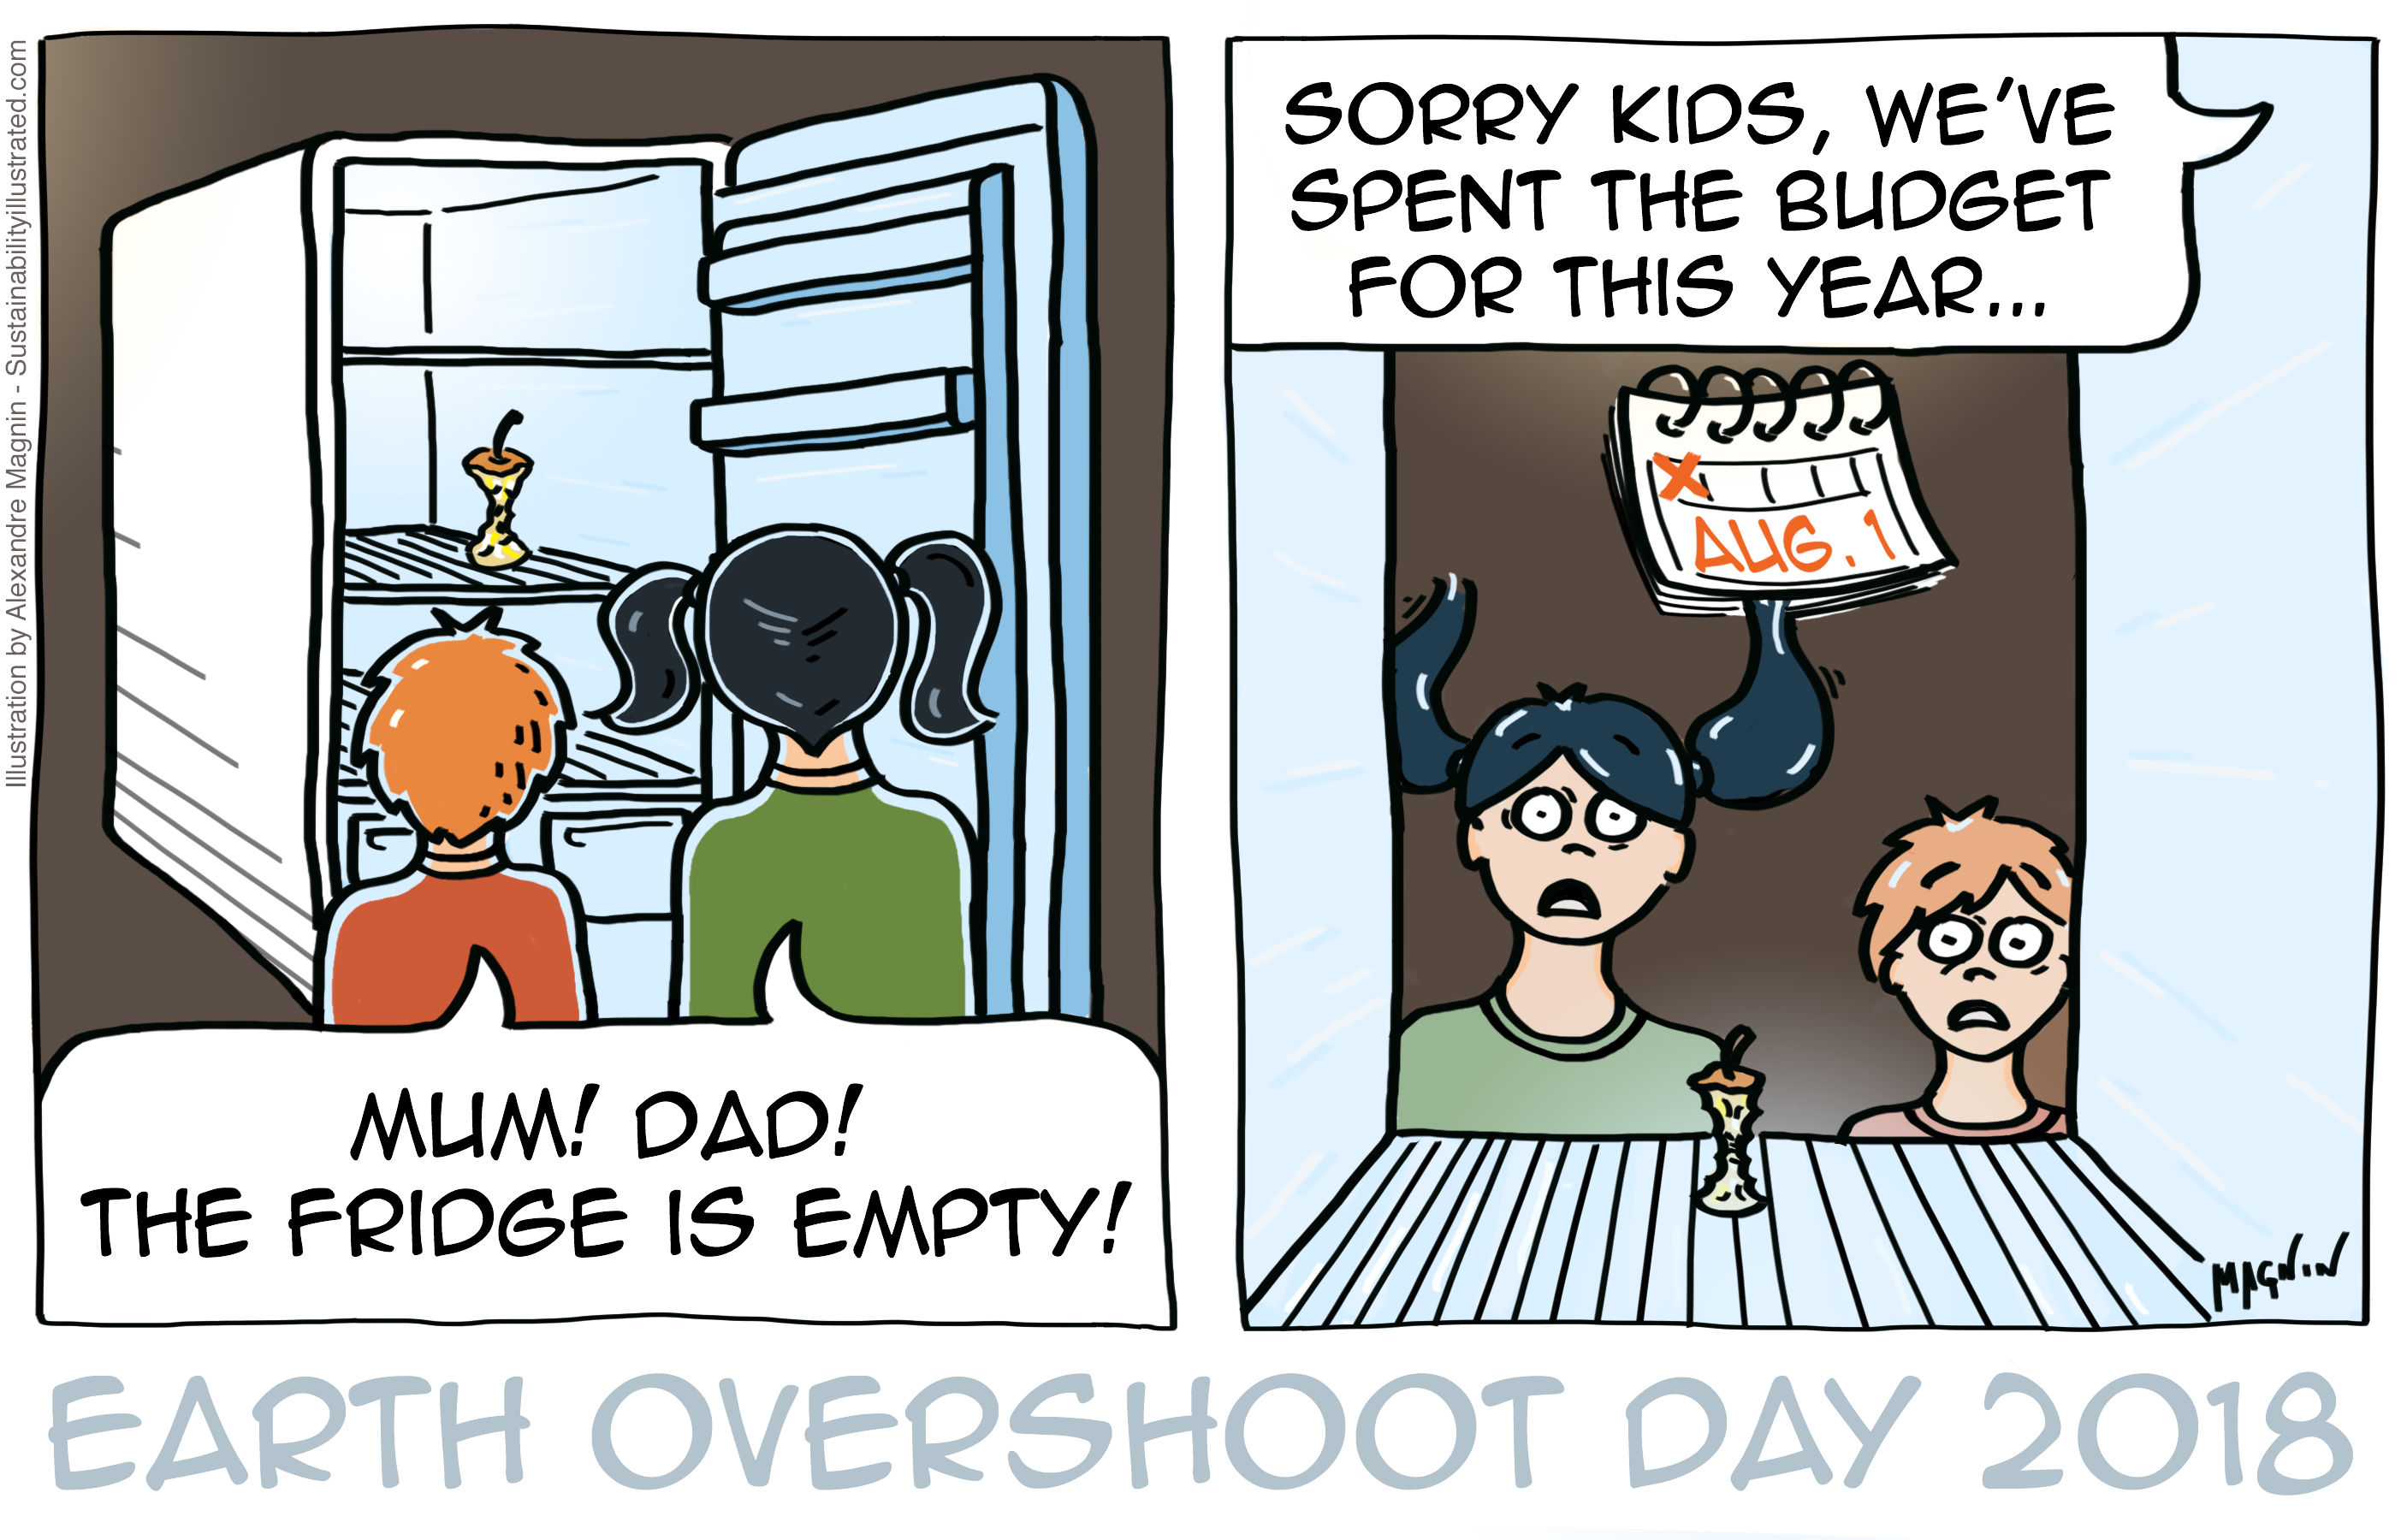 Earth-Overshoot-Day-2018-Cartoon